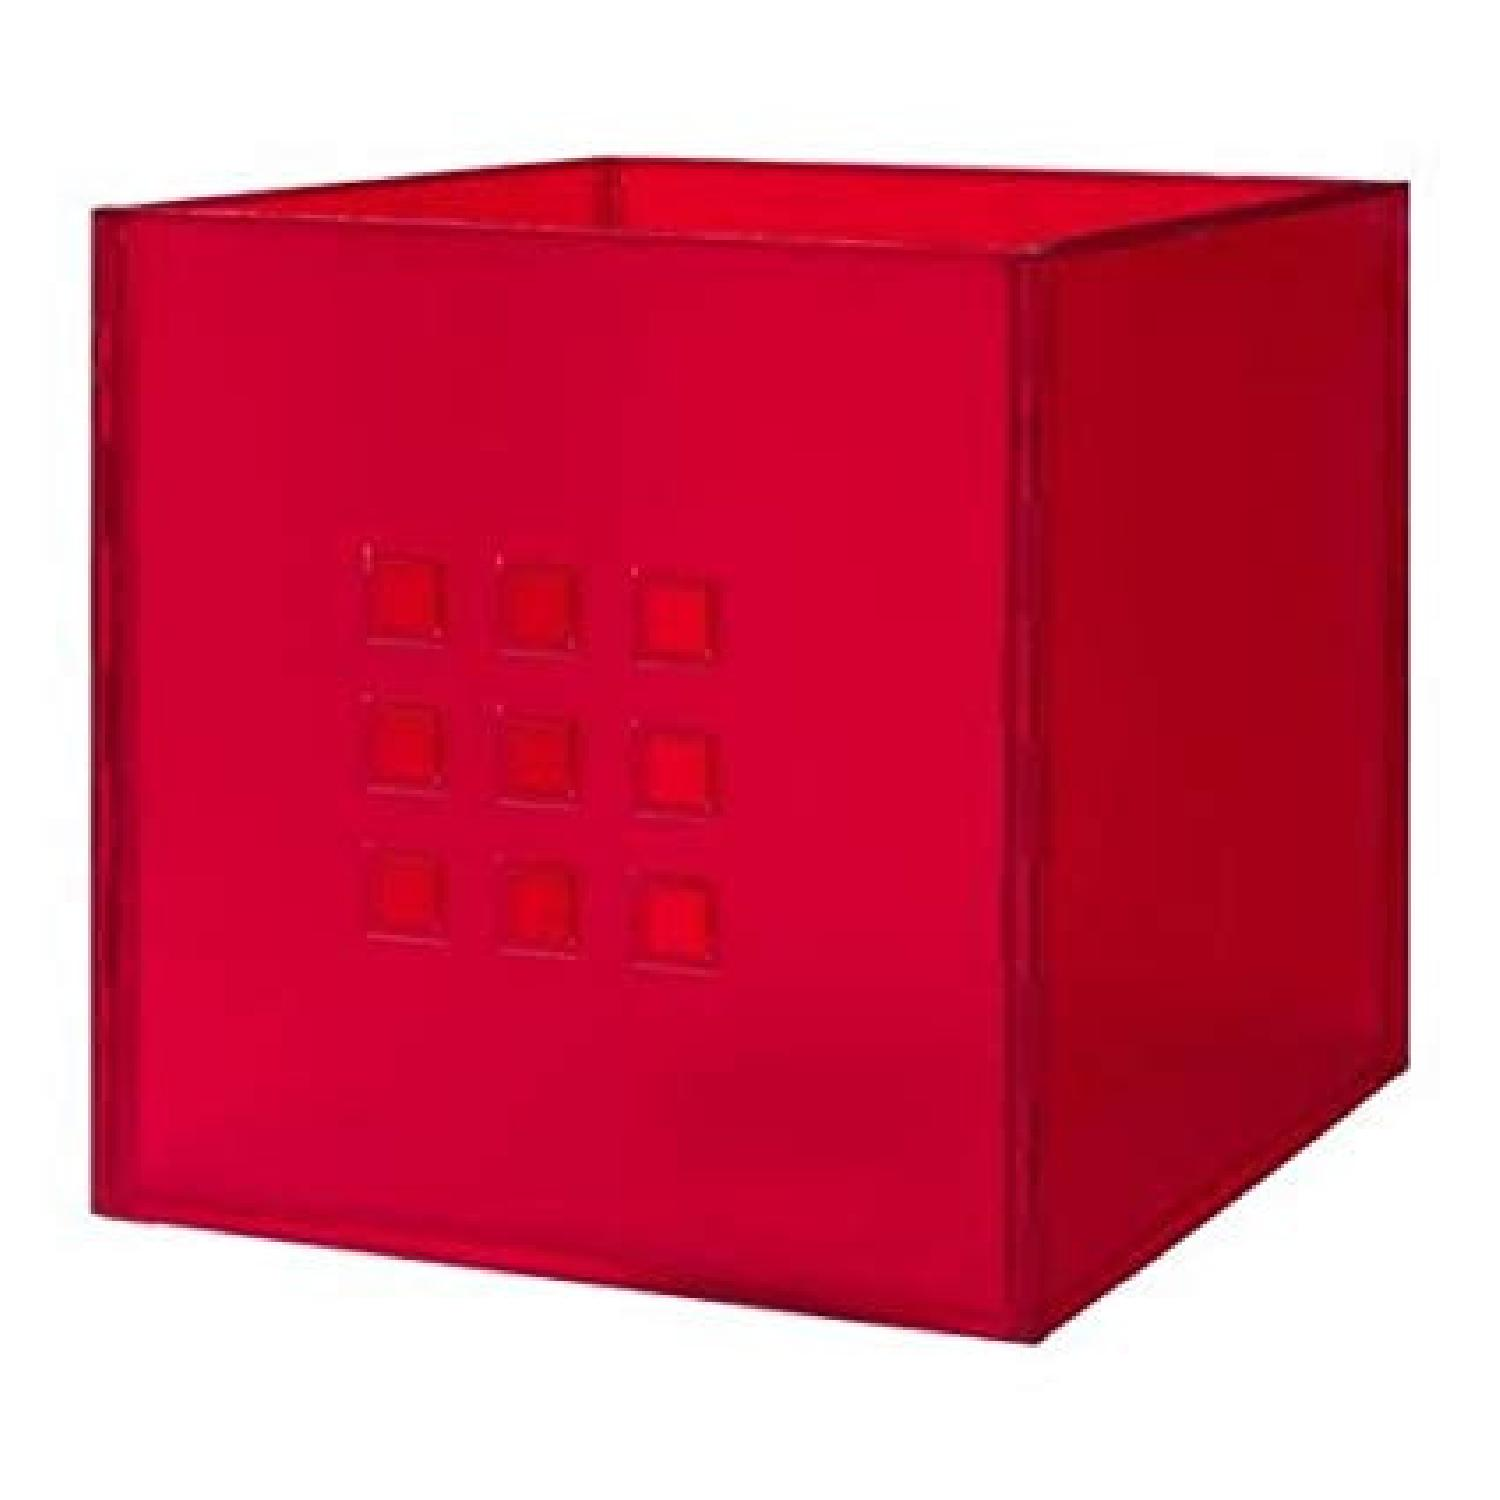 Ikea Lekman Boxes in Red - image-0